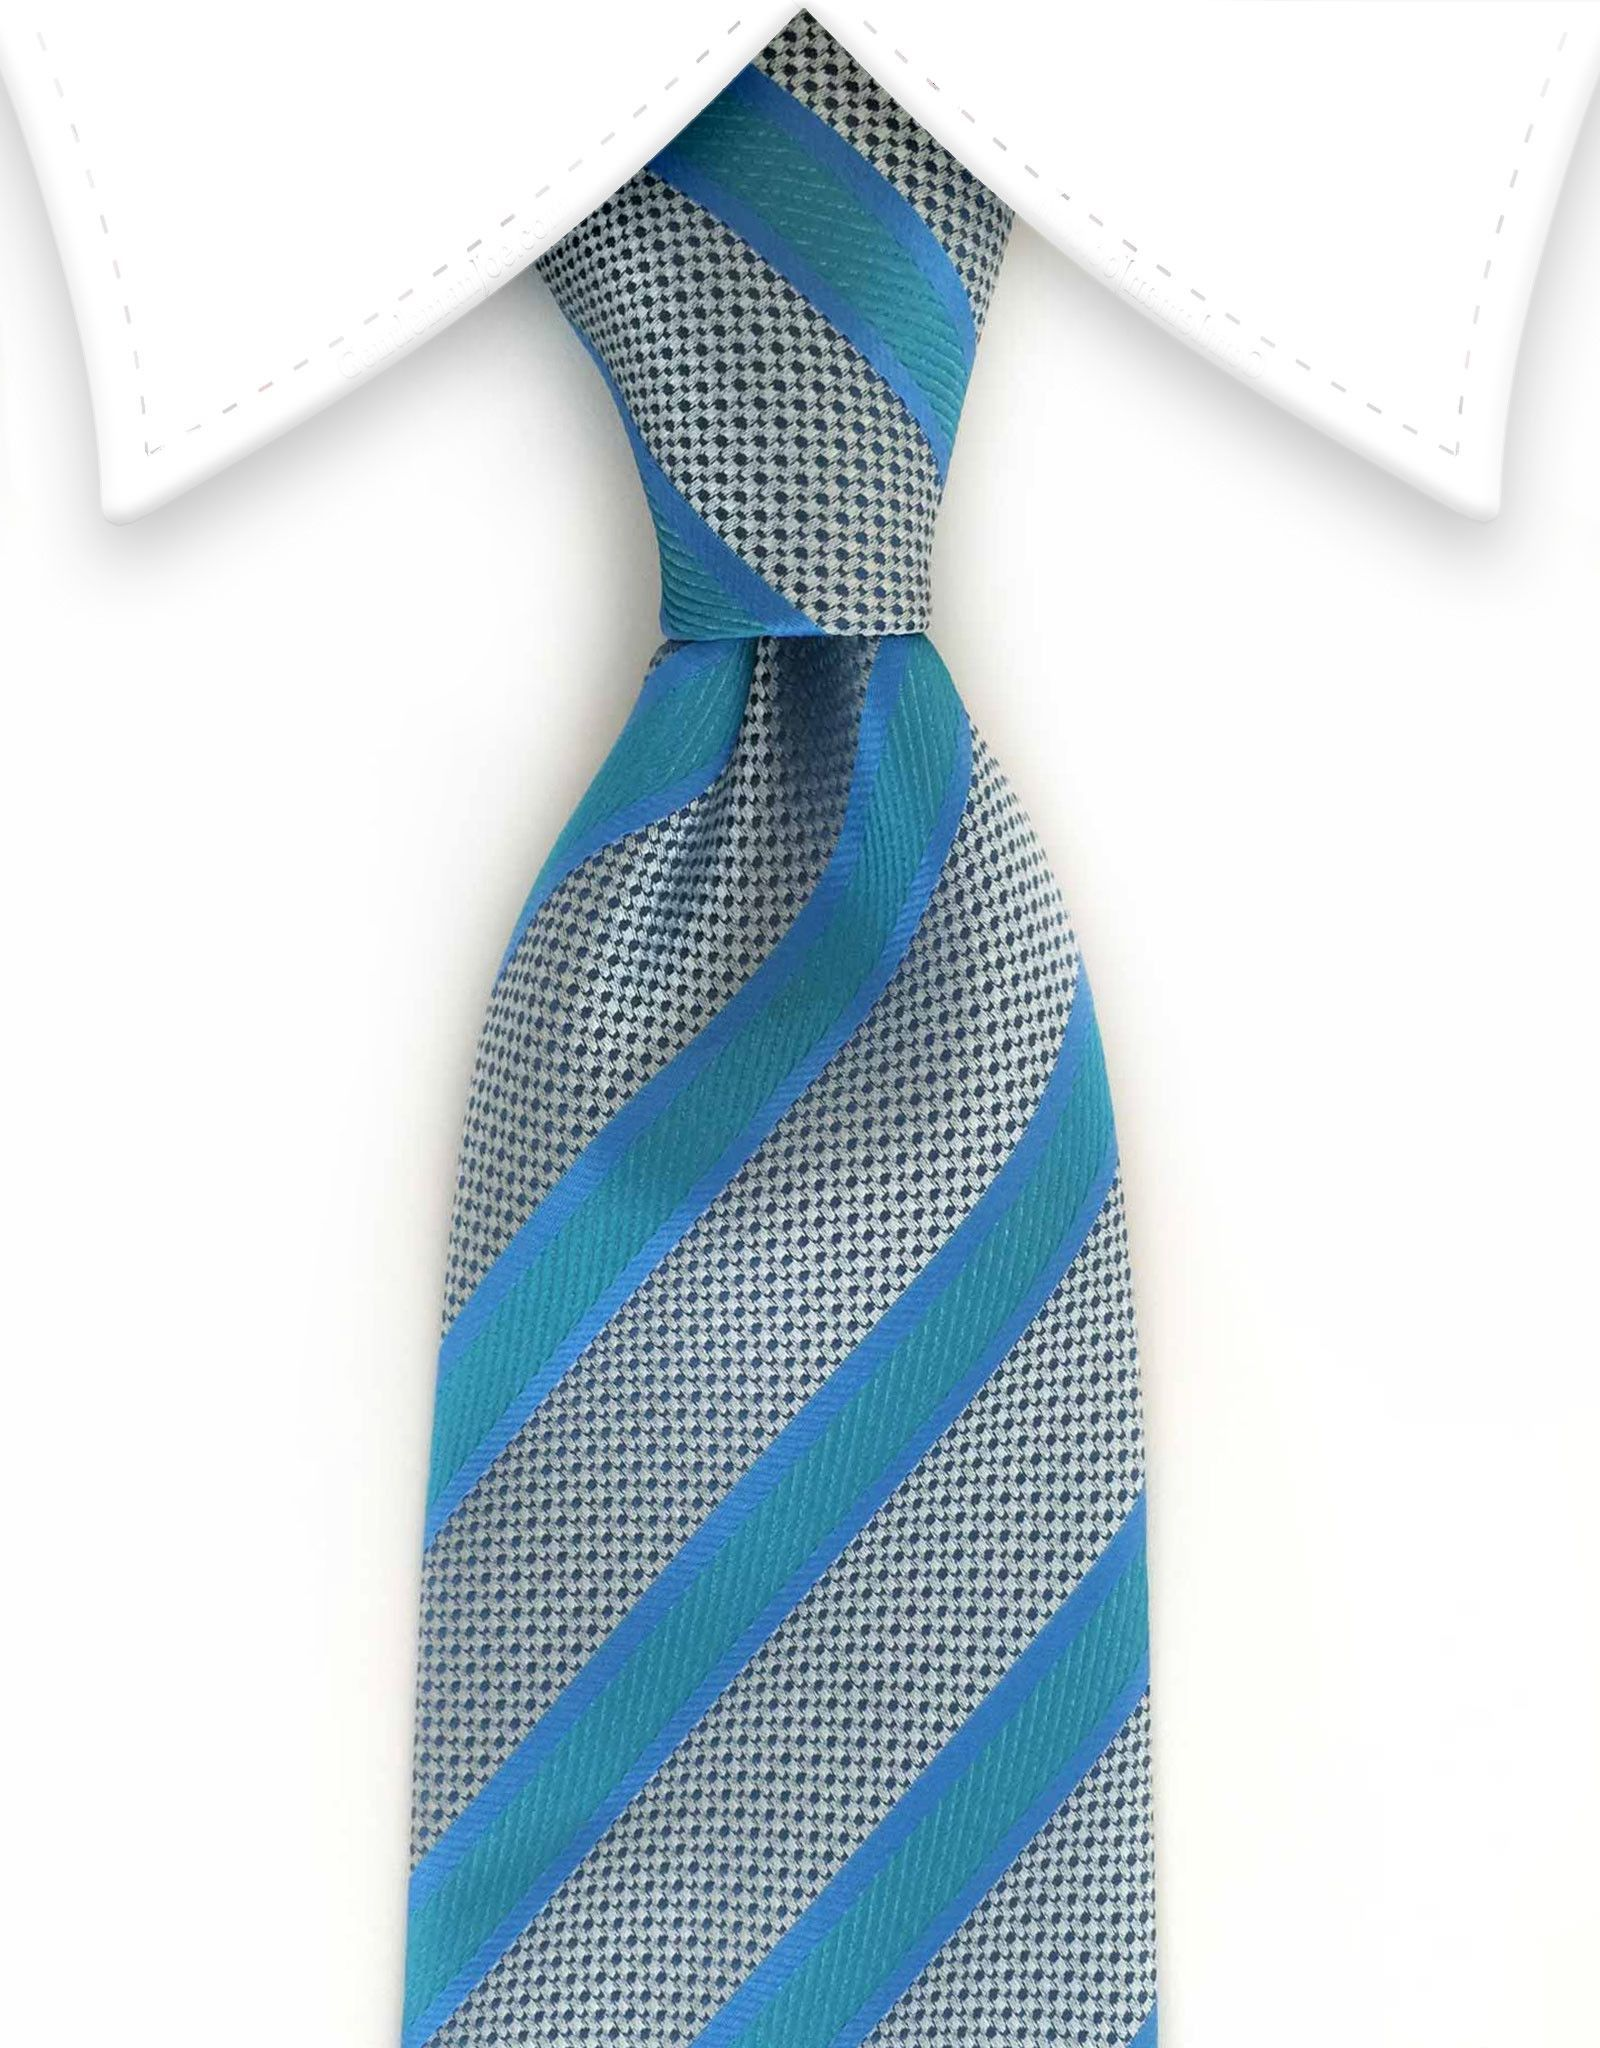 df0efdffd92f Turquoise, Green & Silver Striped Tie | Products | Tie, Turquoise, Green